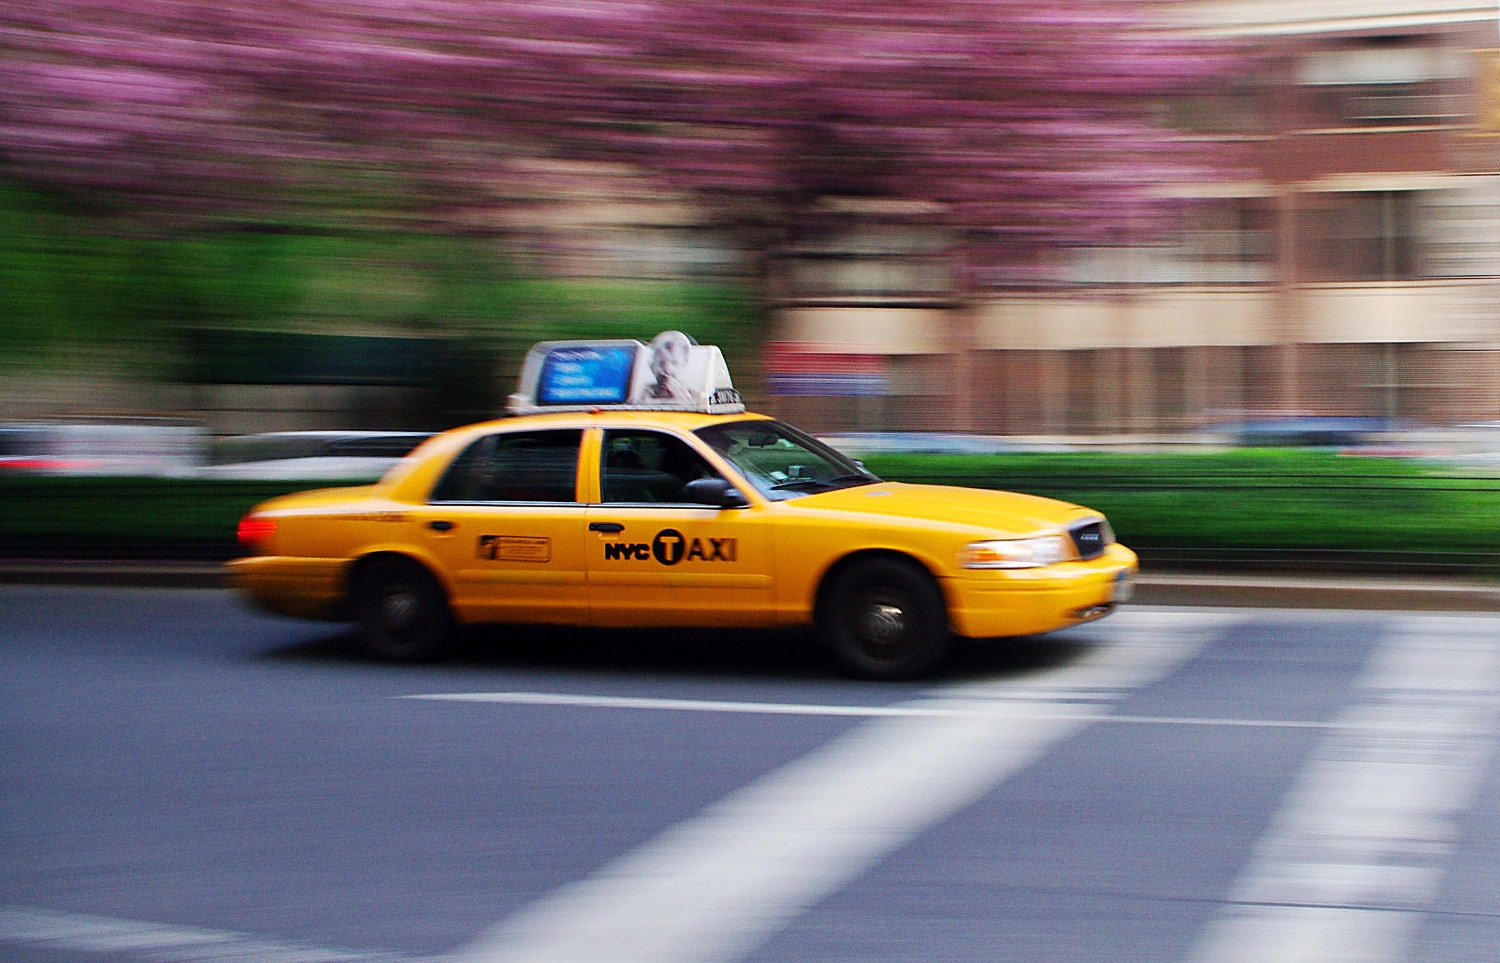 New York City Photograph - Park Avenue Taxi  - 12x18 Print on Kodak Professional Supra Endura Paper